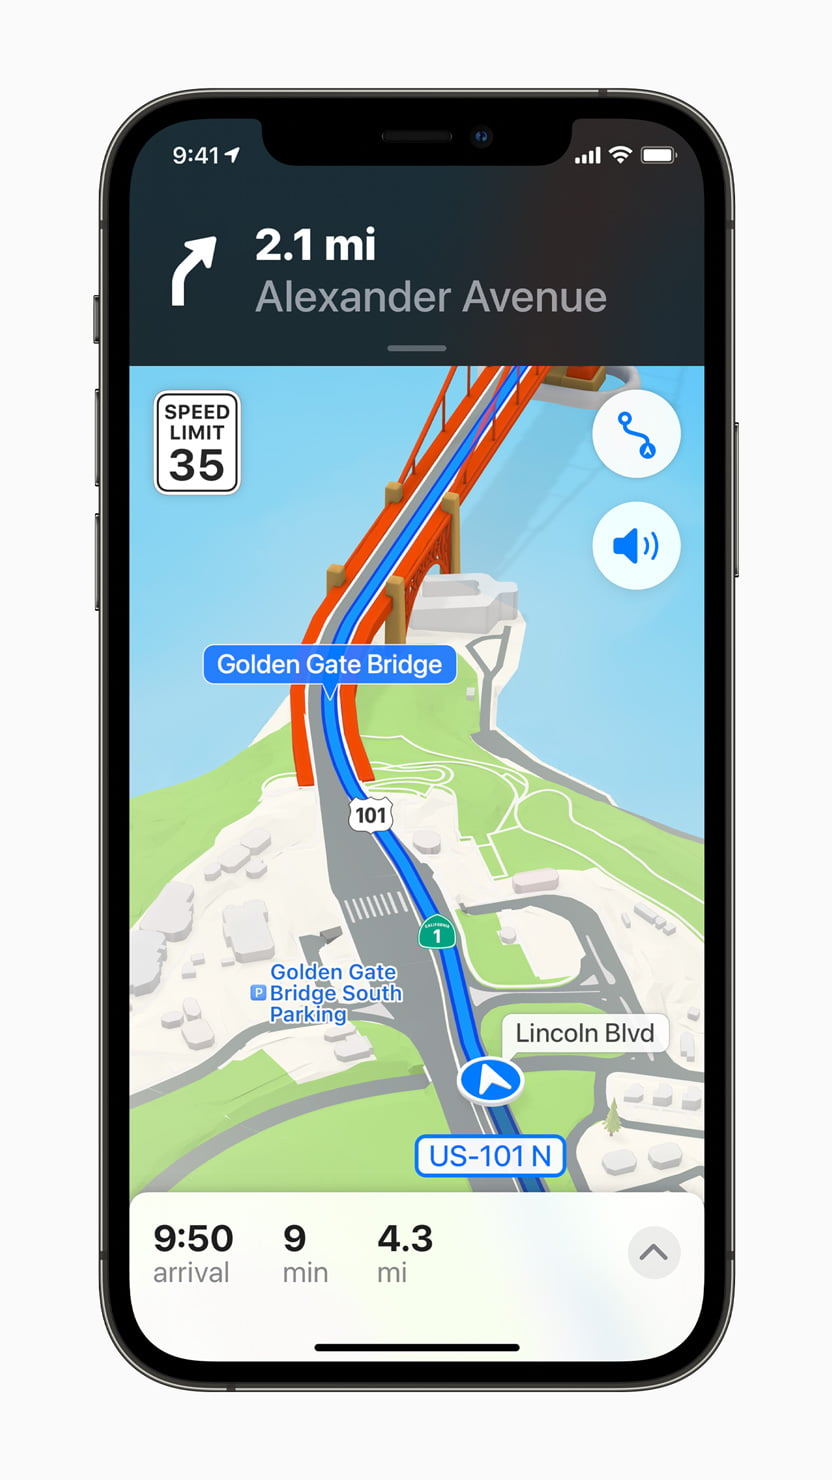 Le nuove mappe in iOS 15